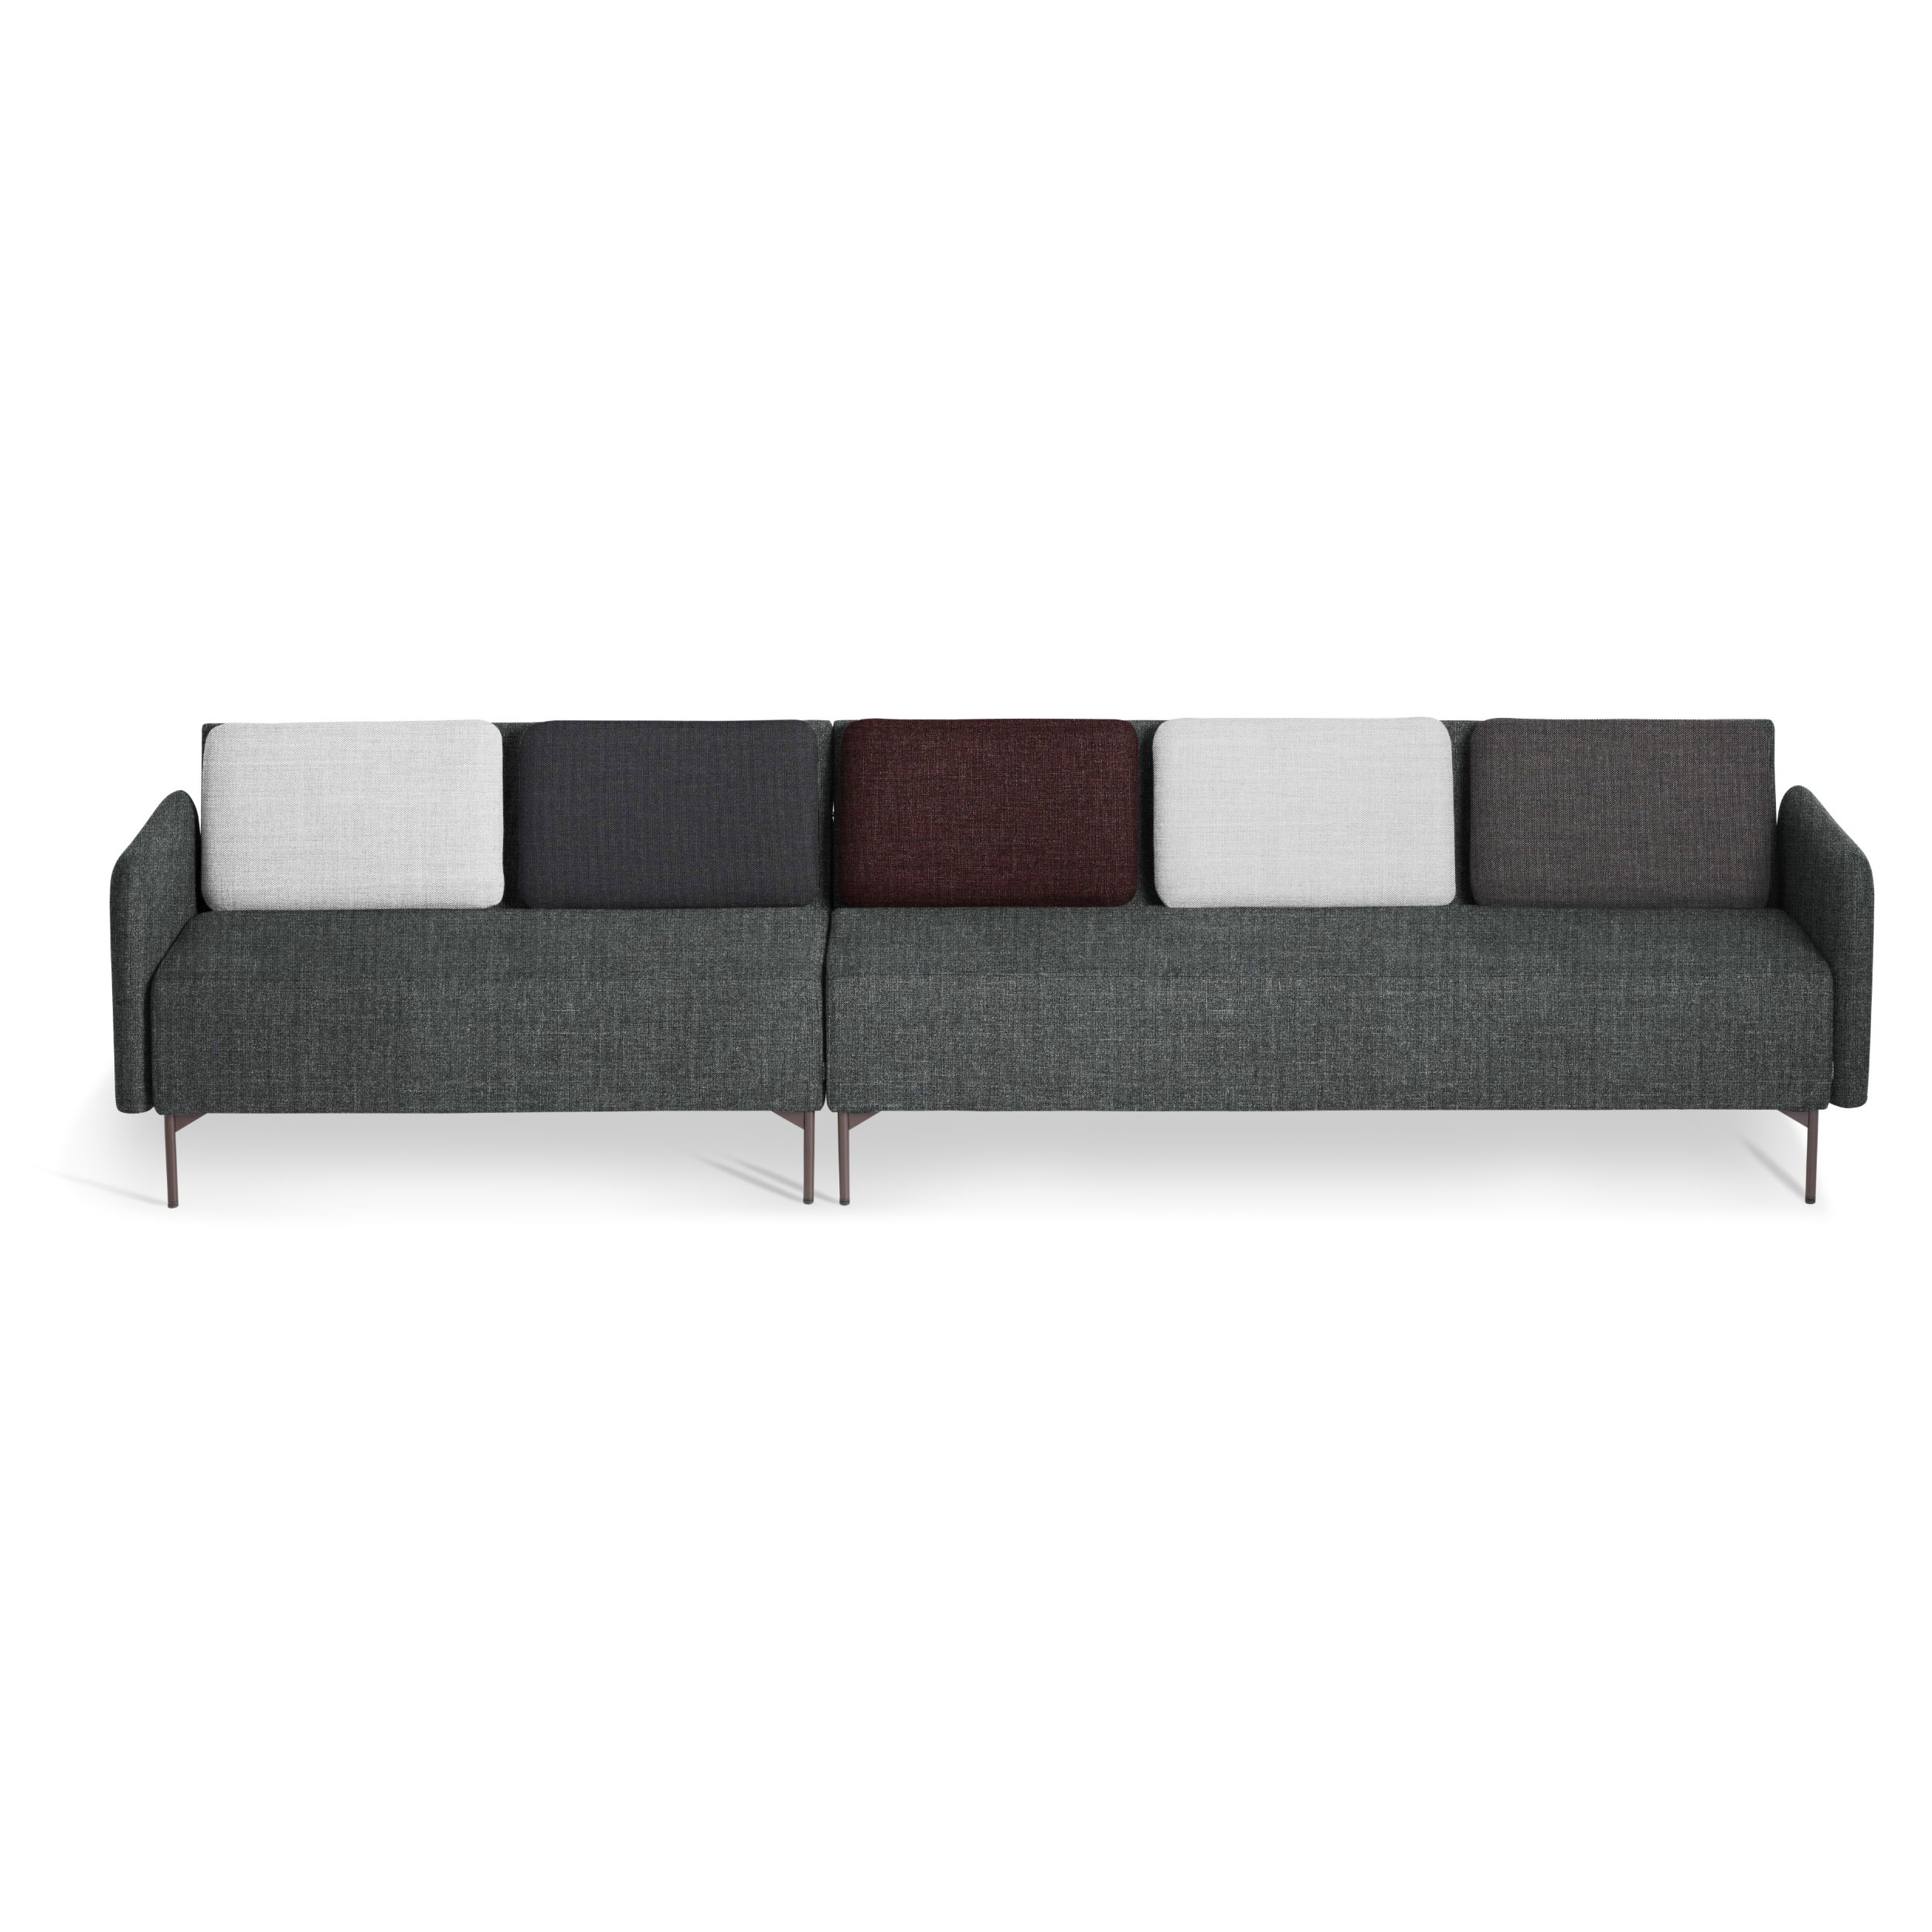 2er Couch Awesome Er Couch Mit Hocker Echtleder In St Leonrot With